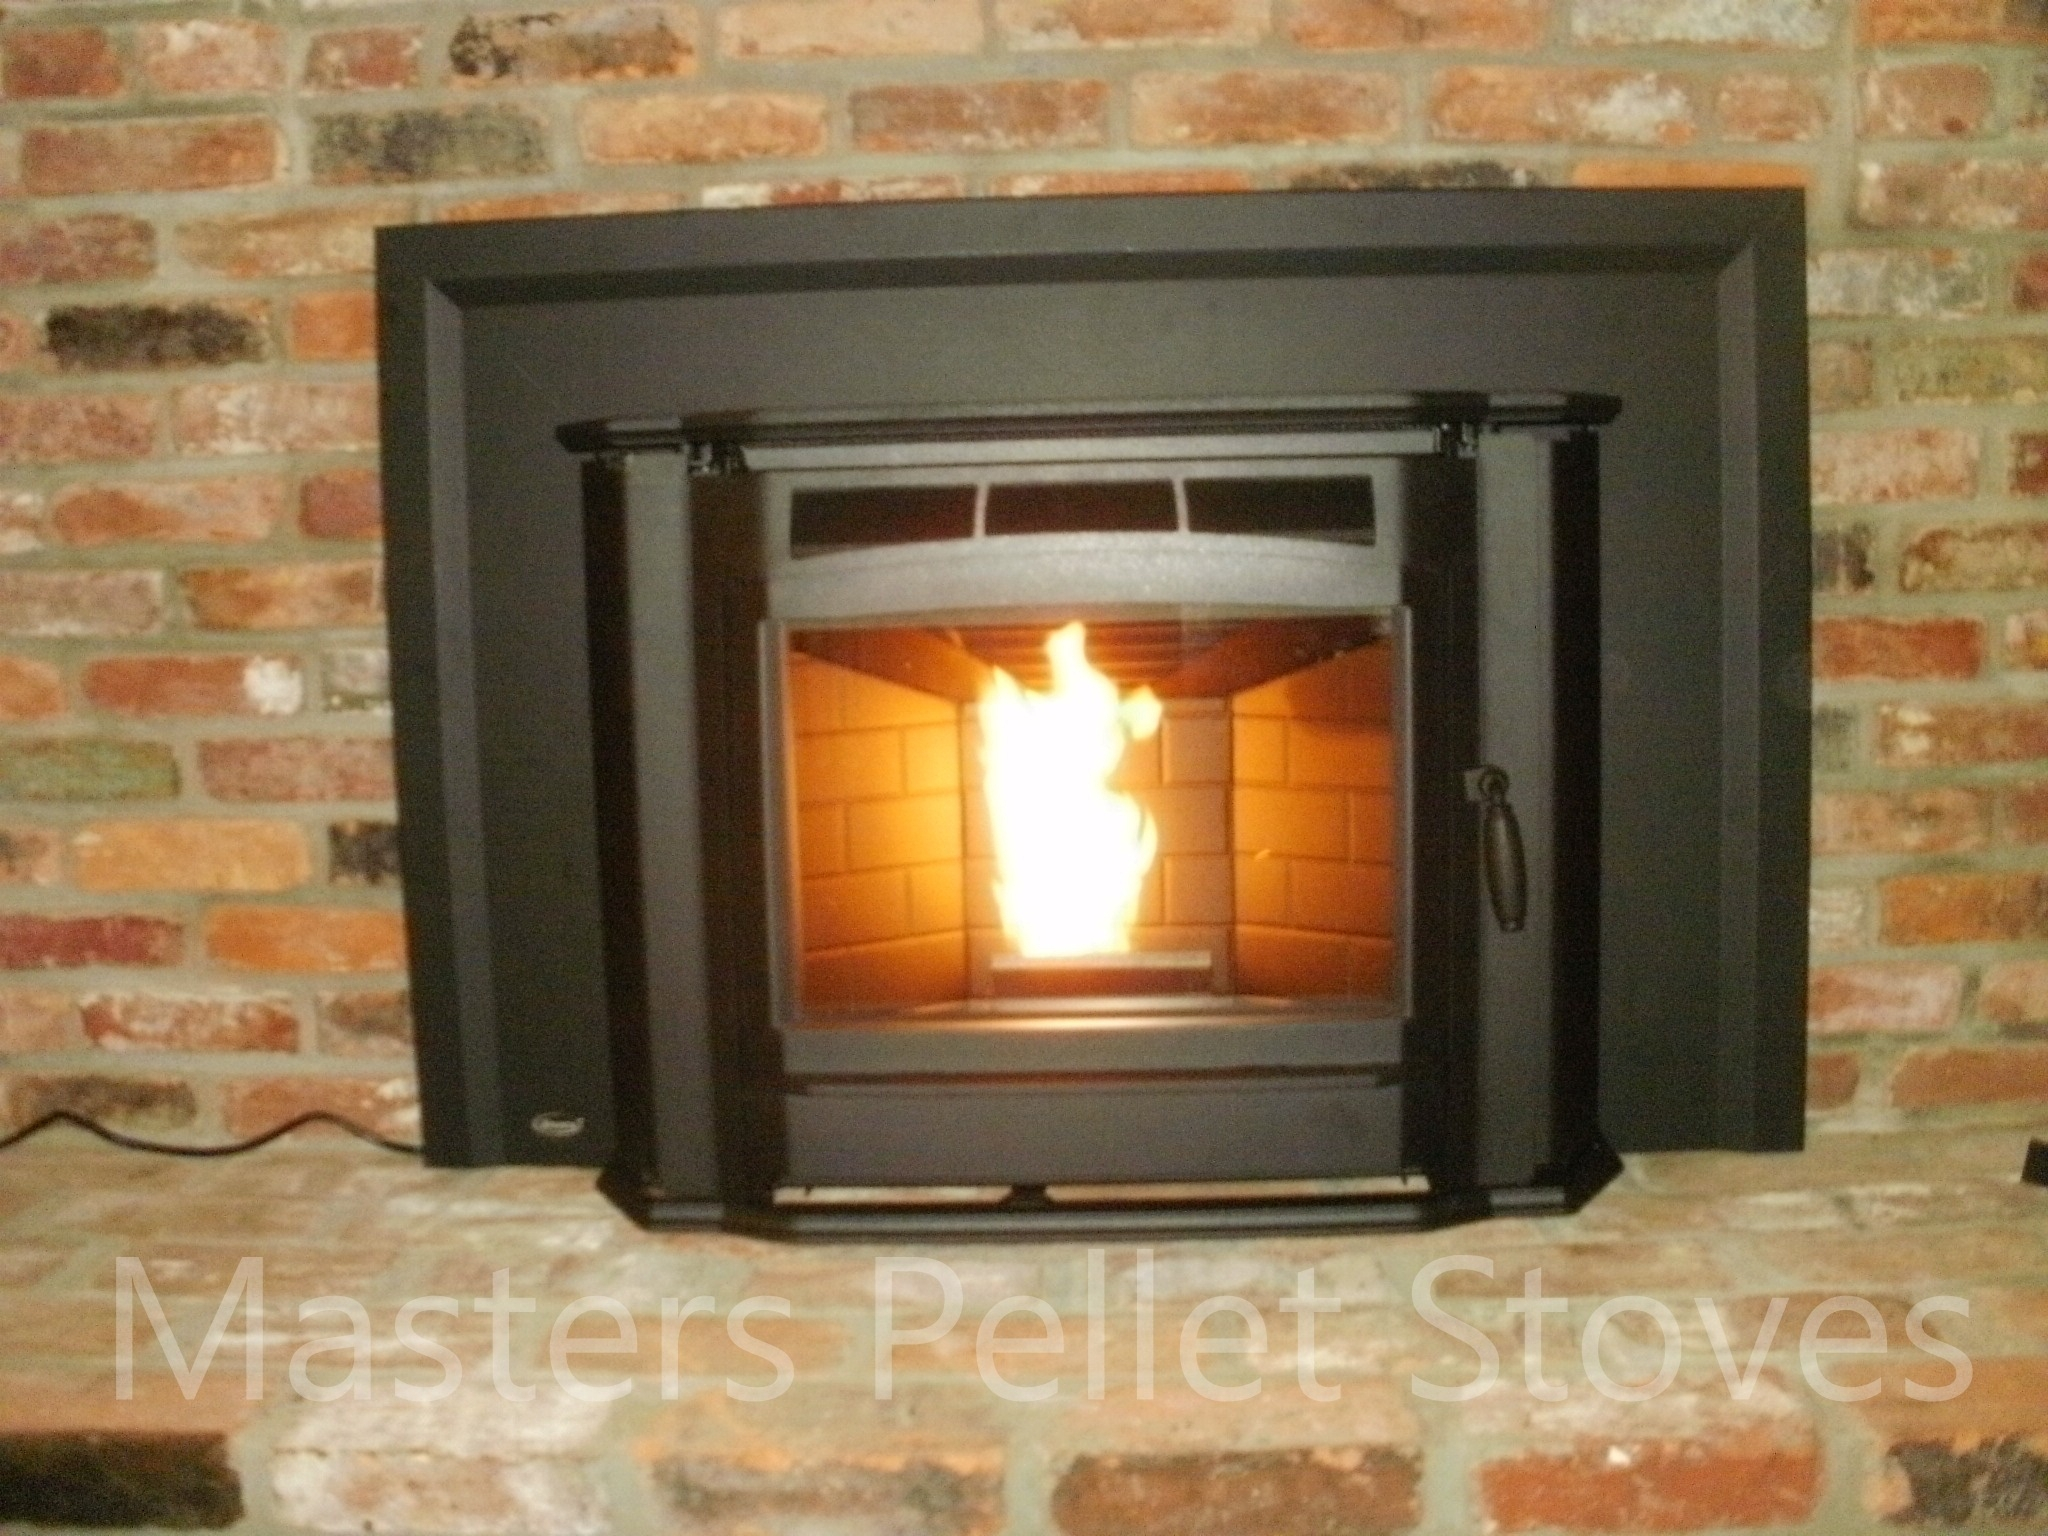 About Wall Mounted Pellet Stove Randolph Indoor And